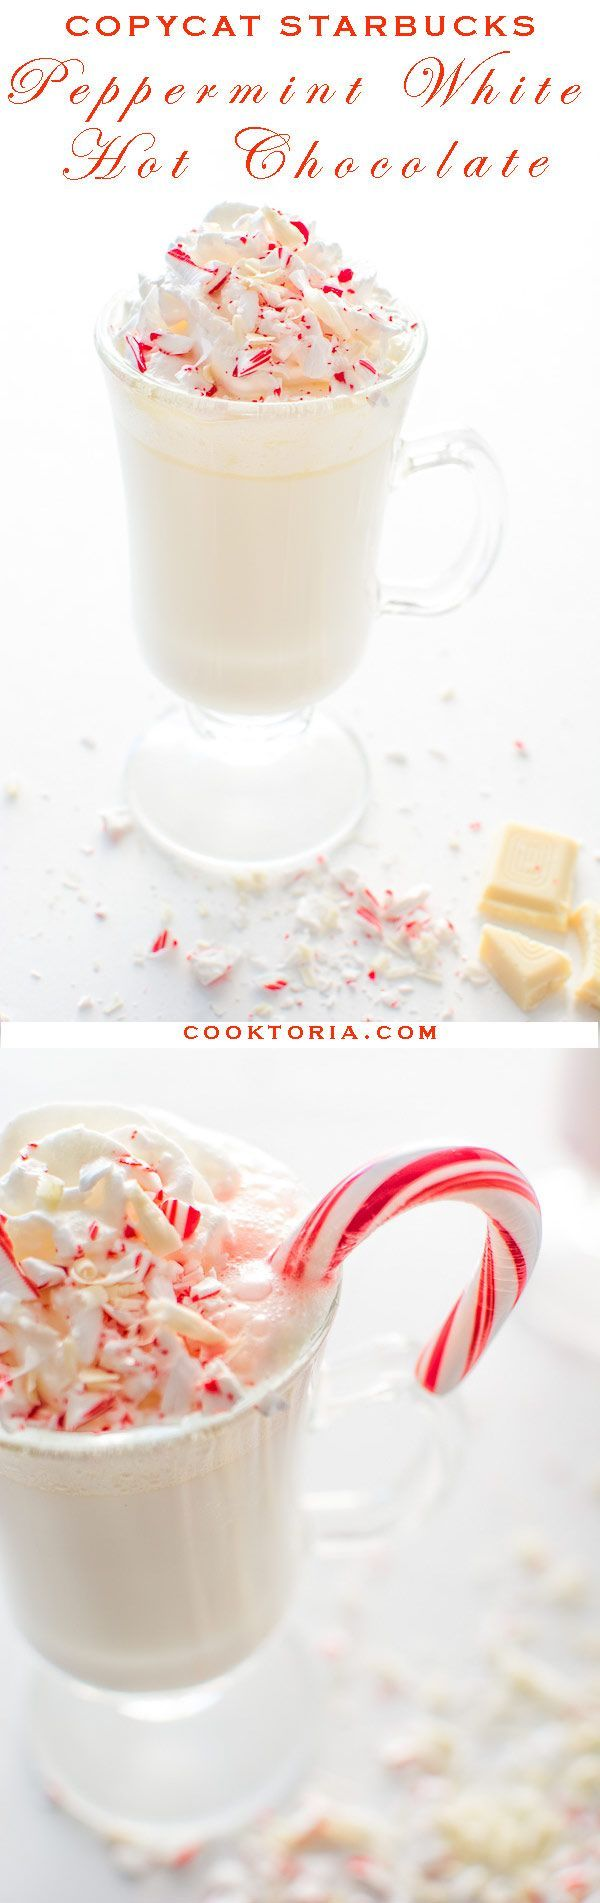 Copycat Starbucks White Peppermint Hot Chocolate. Creamy and sweet, it's just what you are craving this season! ❤ COOKTORIA.COM